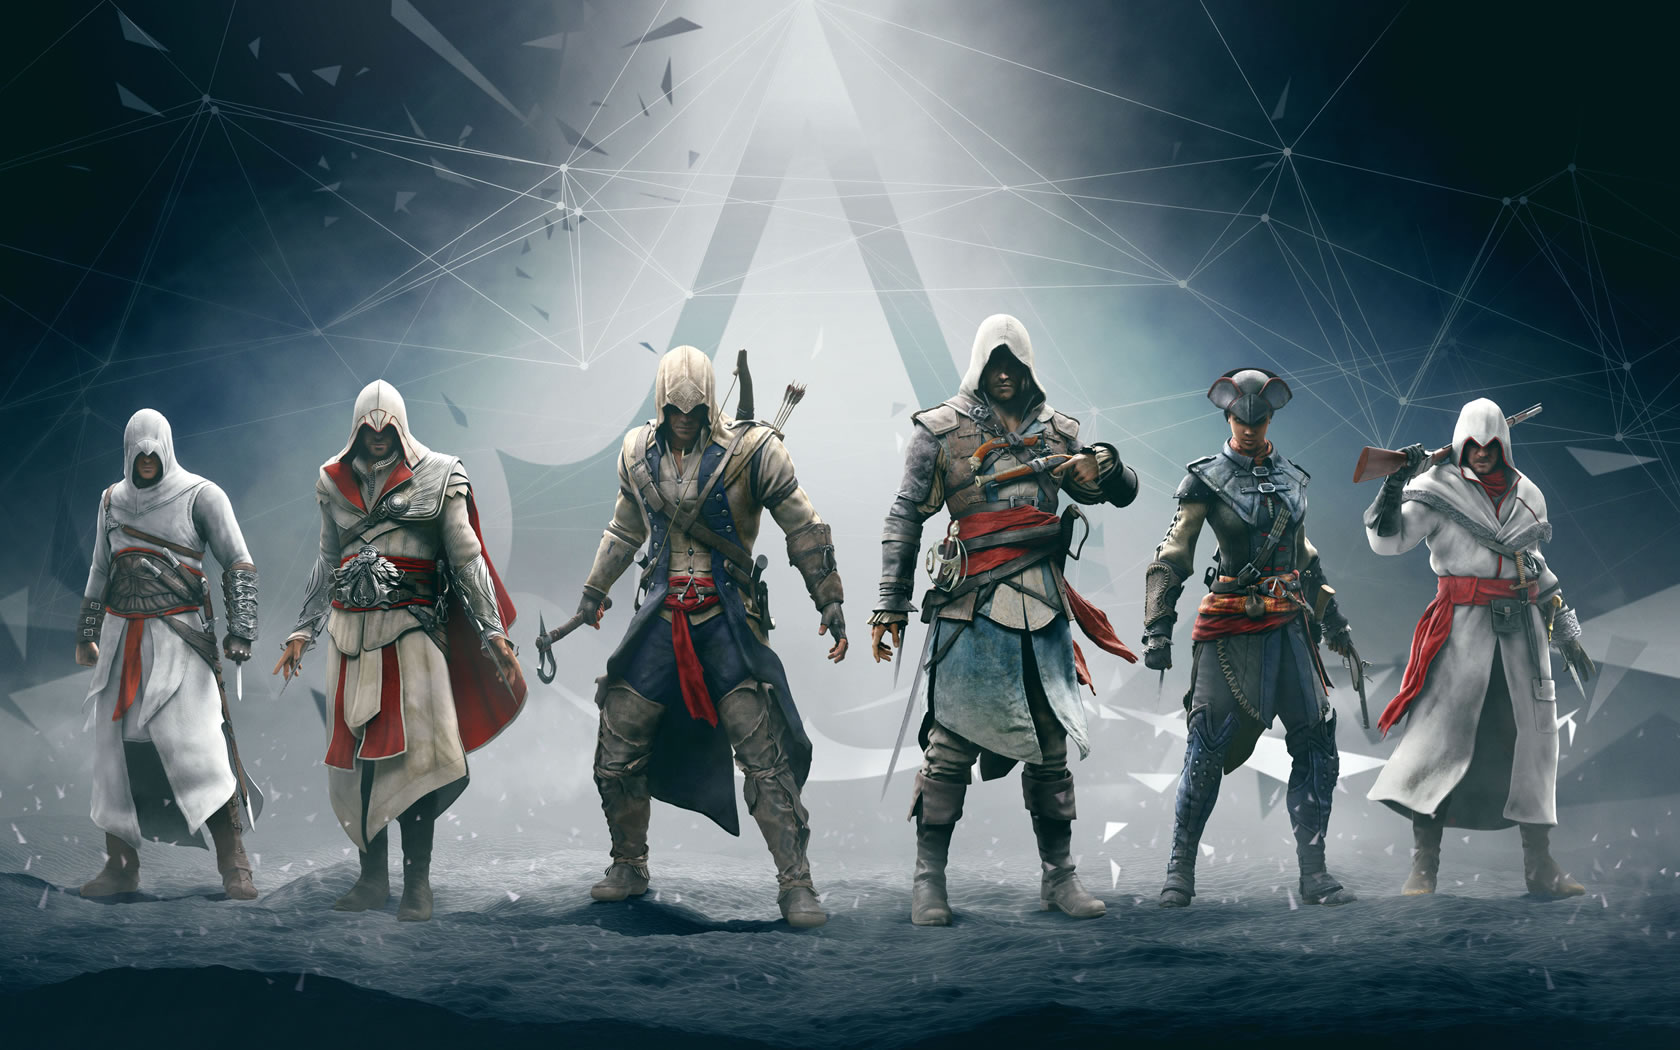 Feudal-Japan-Remains-a-Possible-Assassin-s-Creed-Location-Ubisoft-Confirms-418744-2